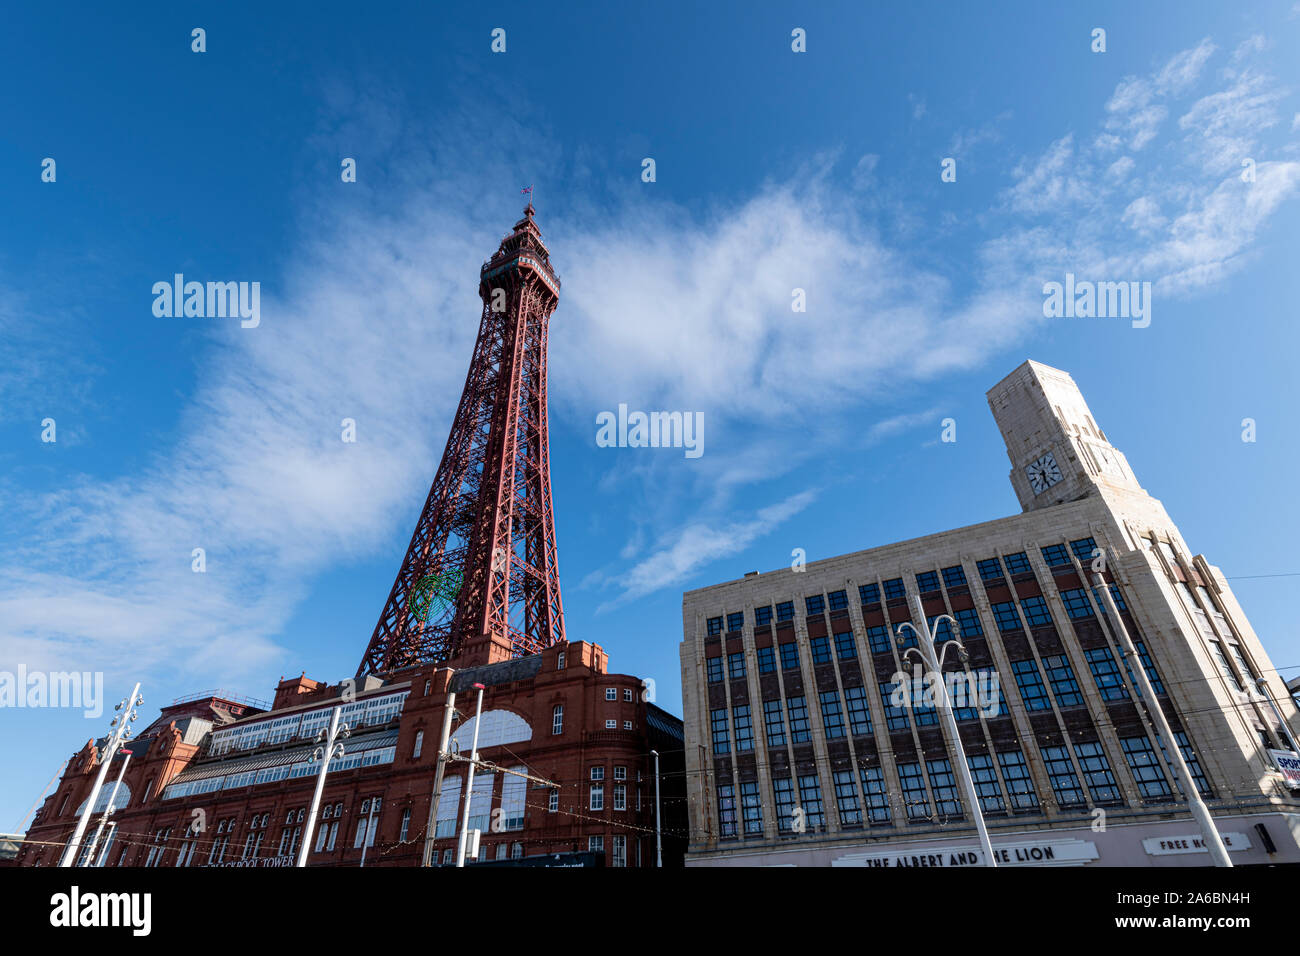 Blackpool Tower ans the old Woolworths building  on a sunny day with blue skies. Stock Photo